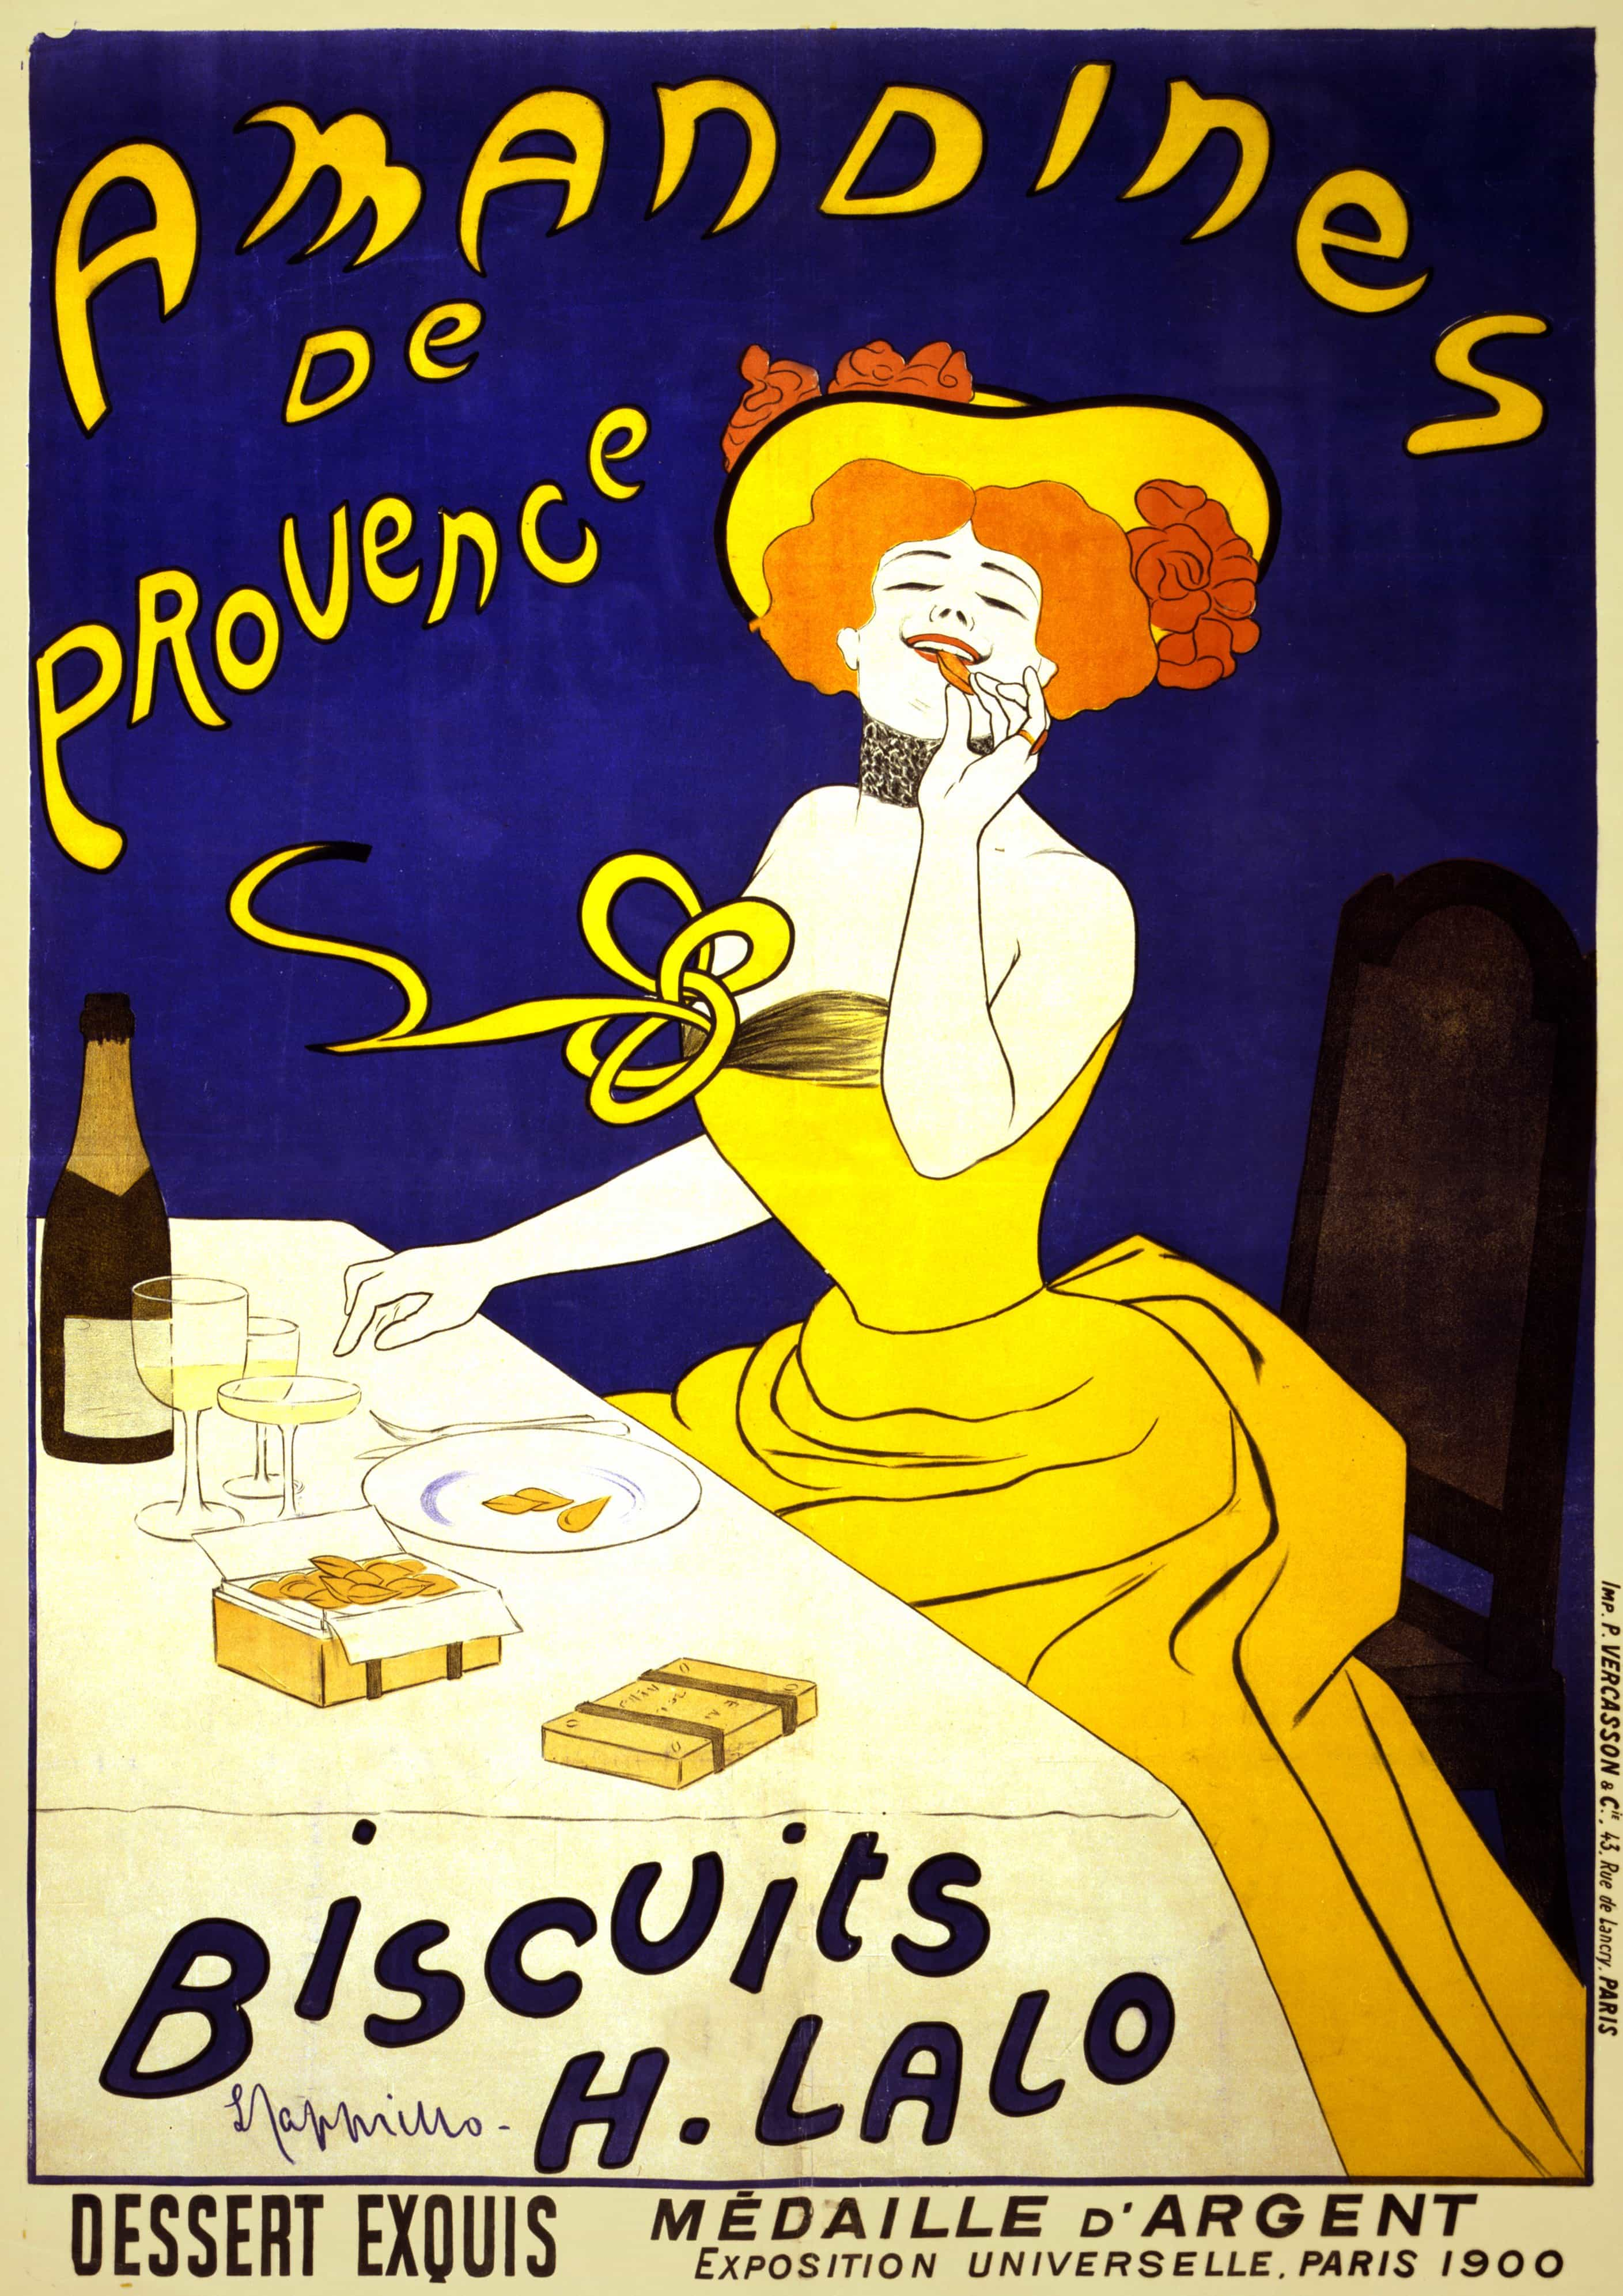 Leonetto Cappiello: The Father of Modern Advertising Poster